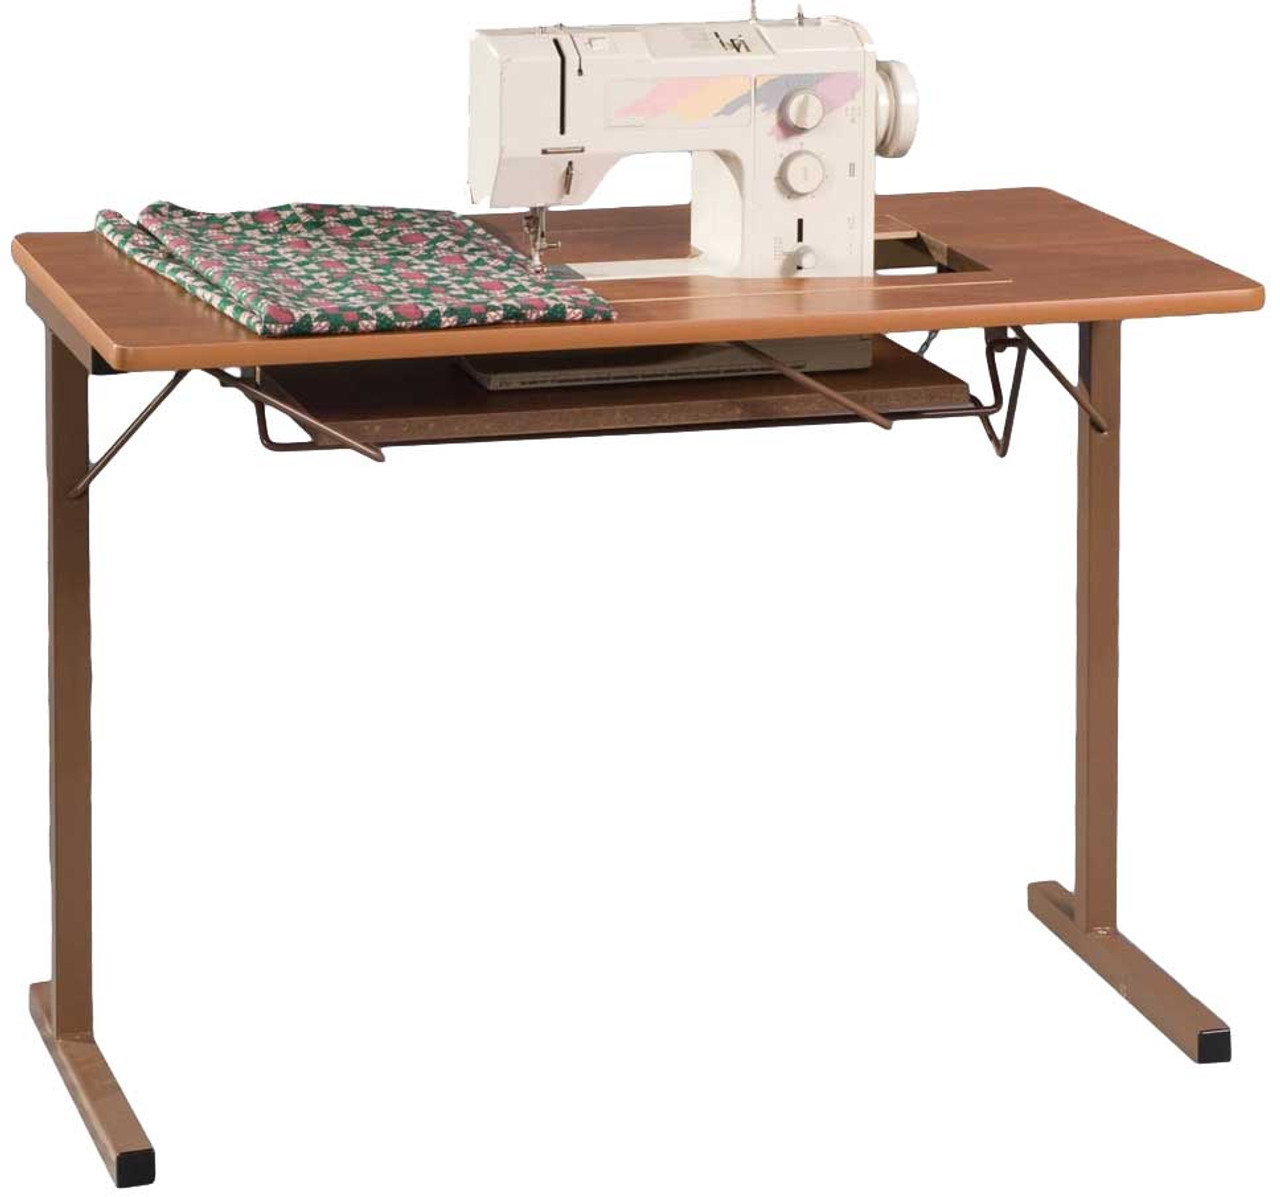 fashion sewing cabinets 299 foldable sewing machine table rustic rh sewvacdirect com sewing machine tables for sale sewing machine tables and cabinets